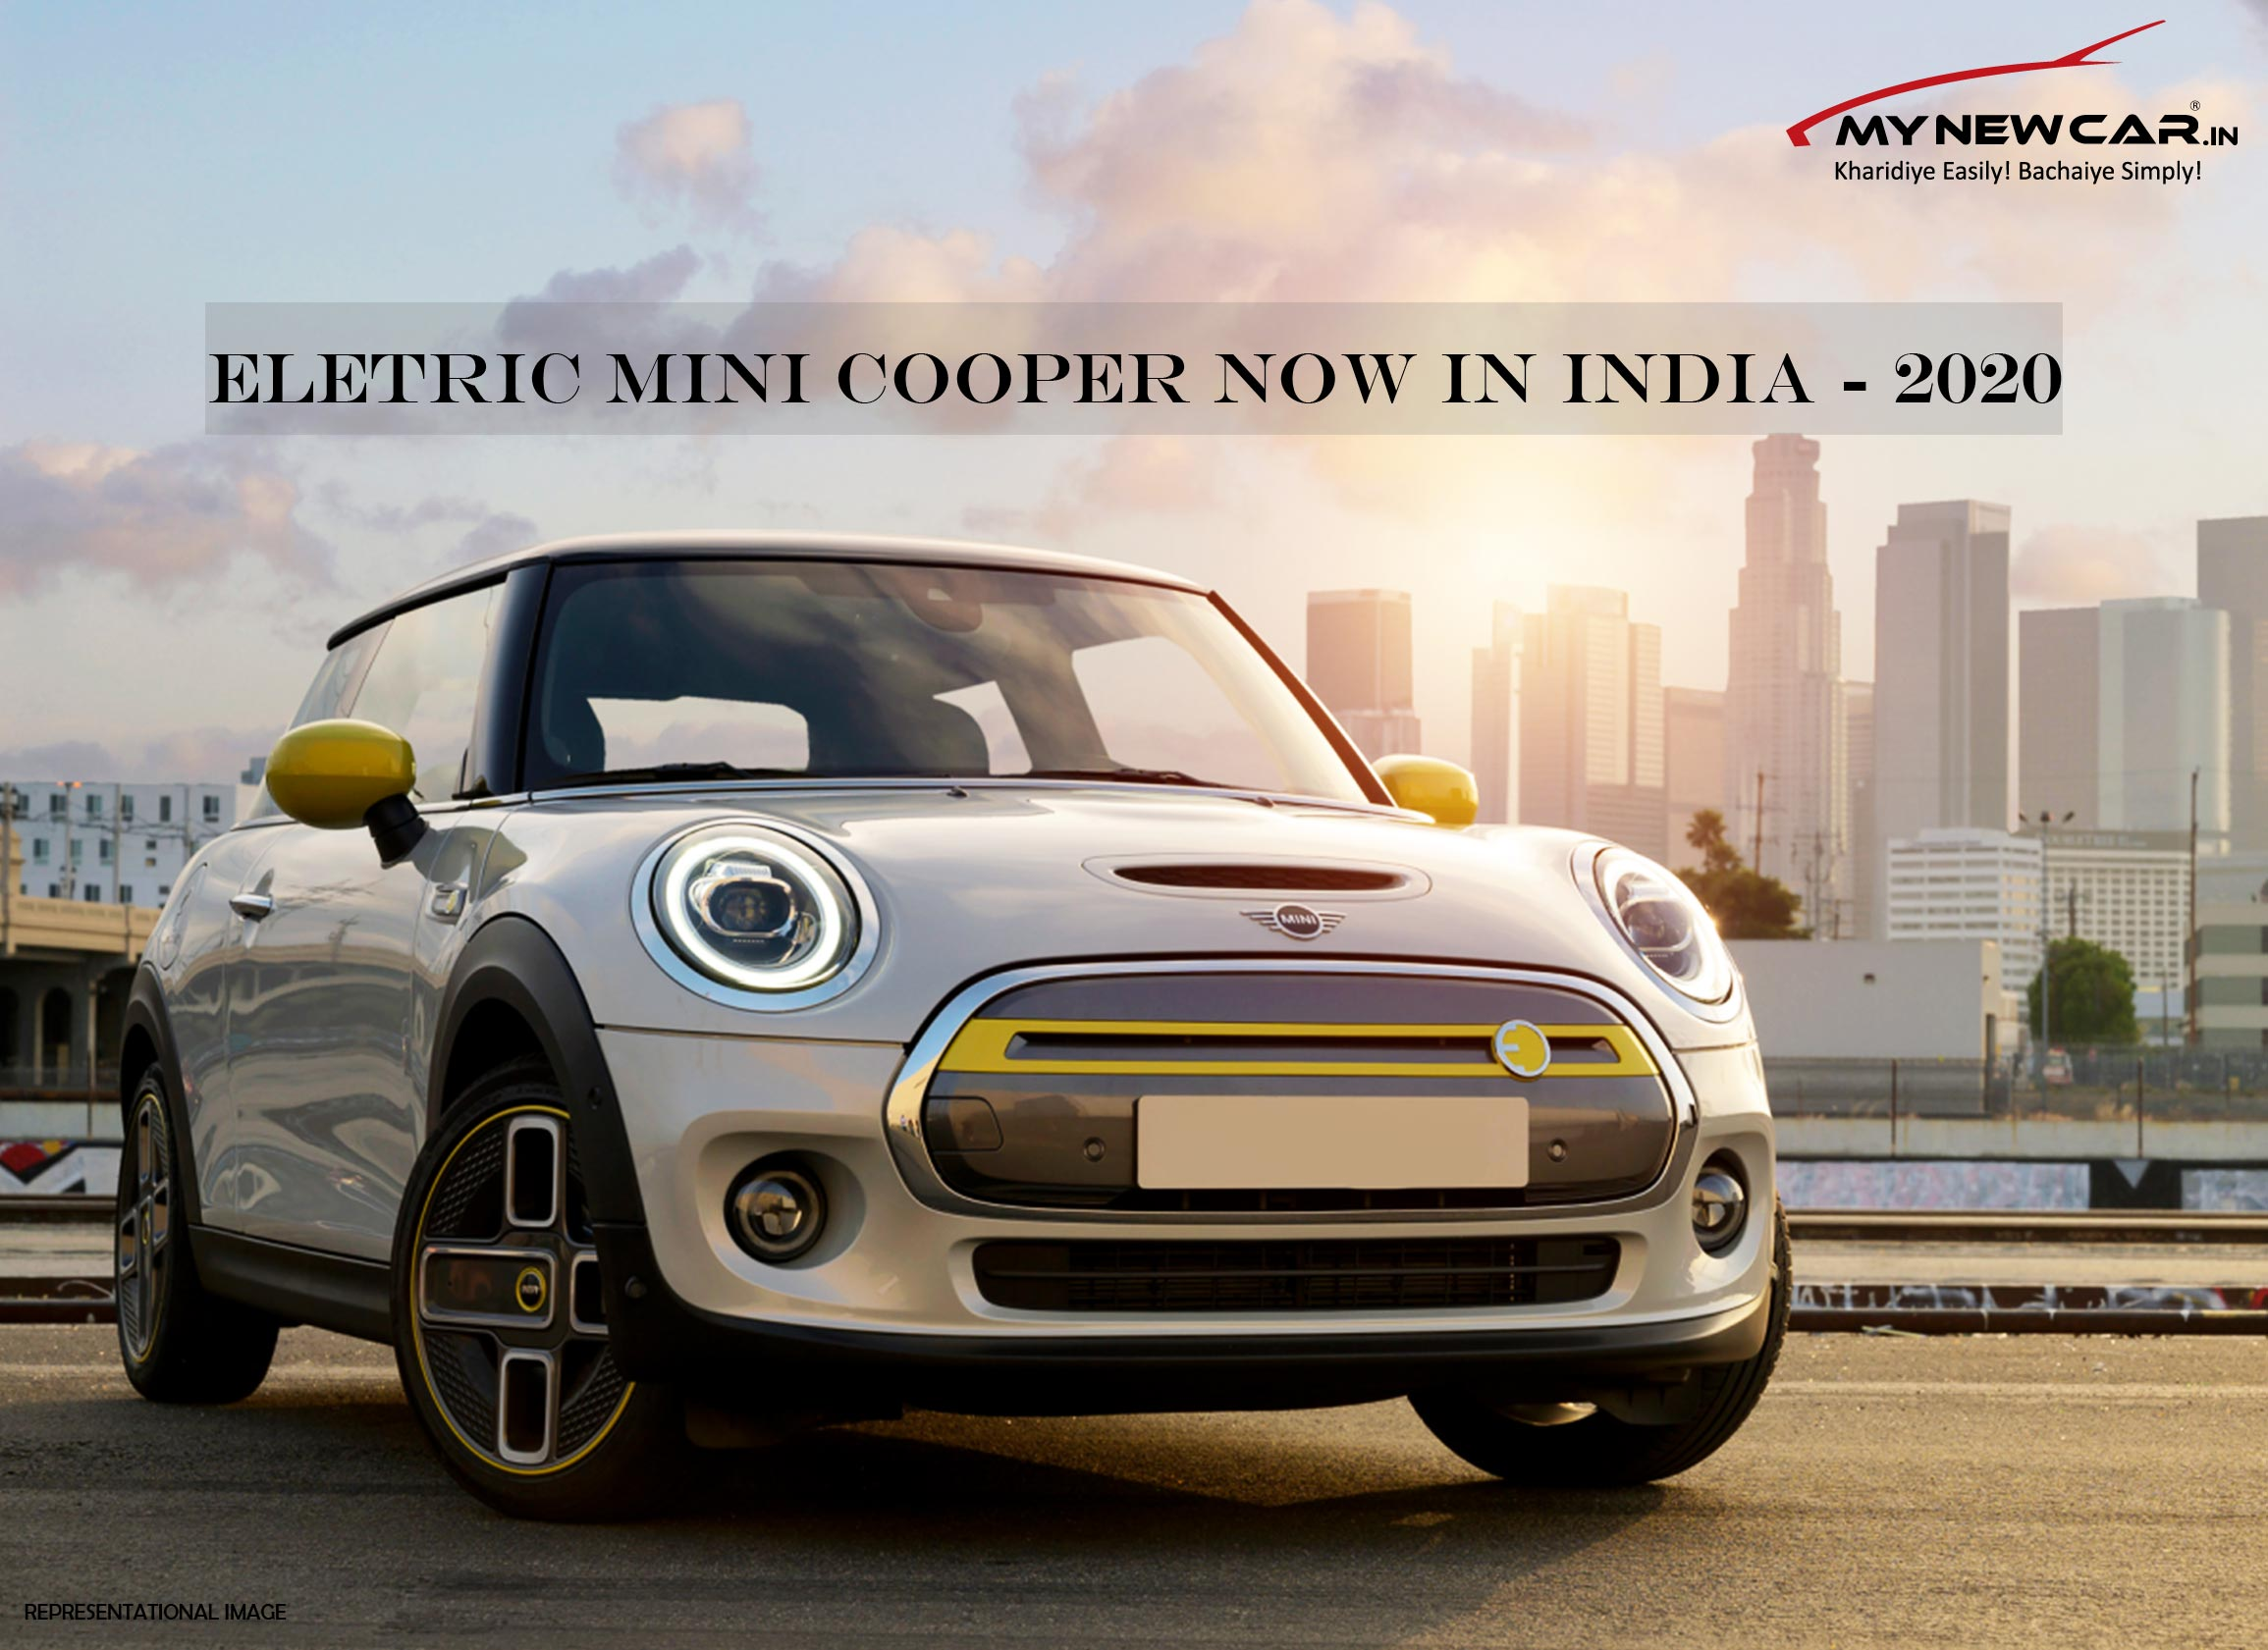 Electric Mini Cooper SE EV to be Launched in 2021 in India